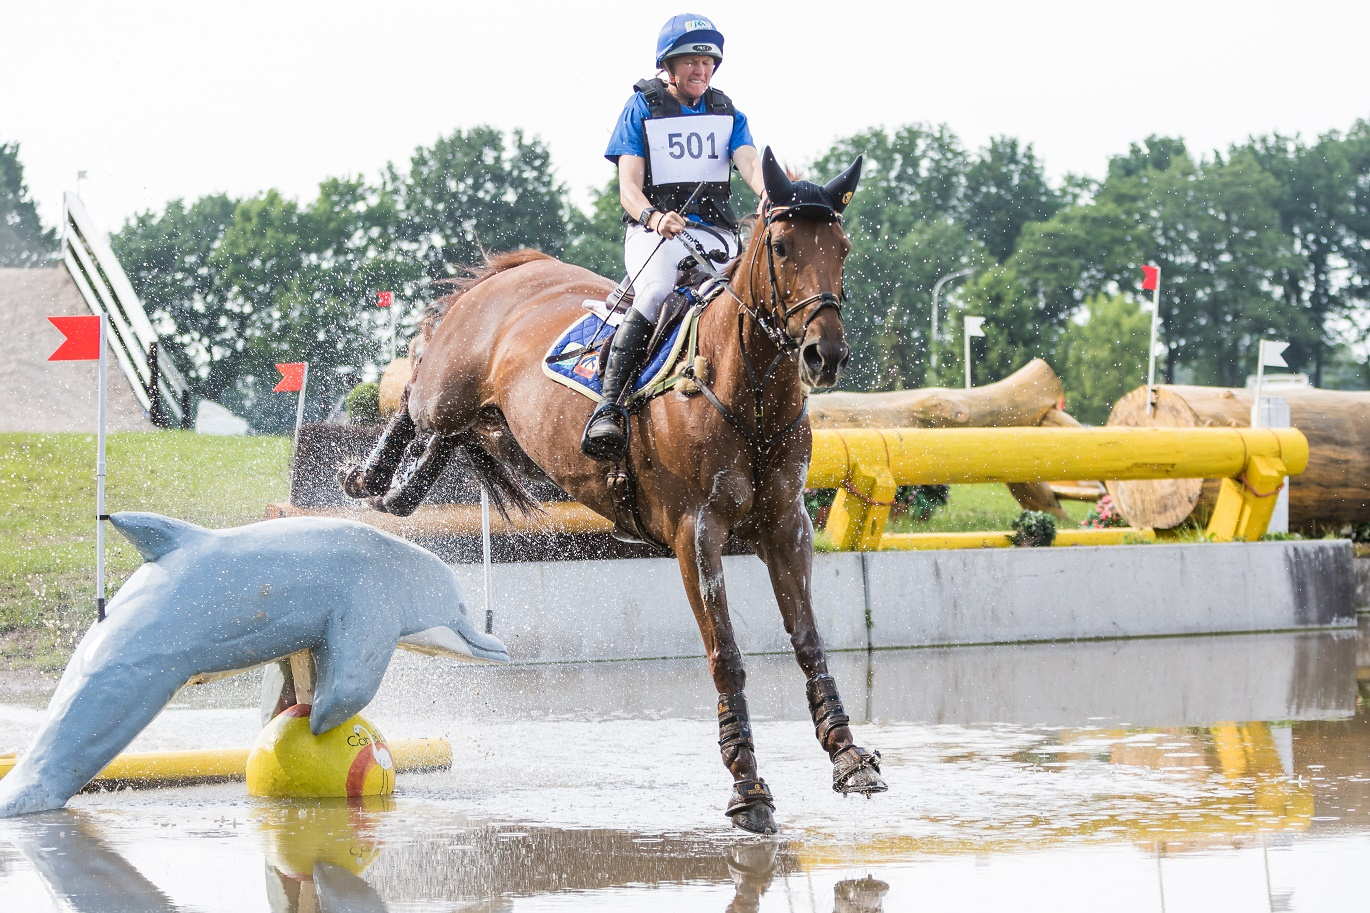 Jalapeno, 2nd place CIC2* Renswoude 2016 ©eventingphoto.com